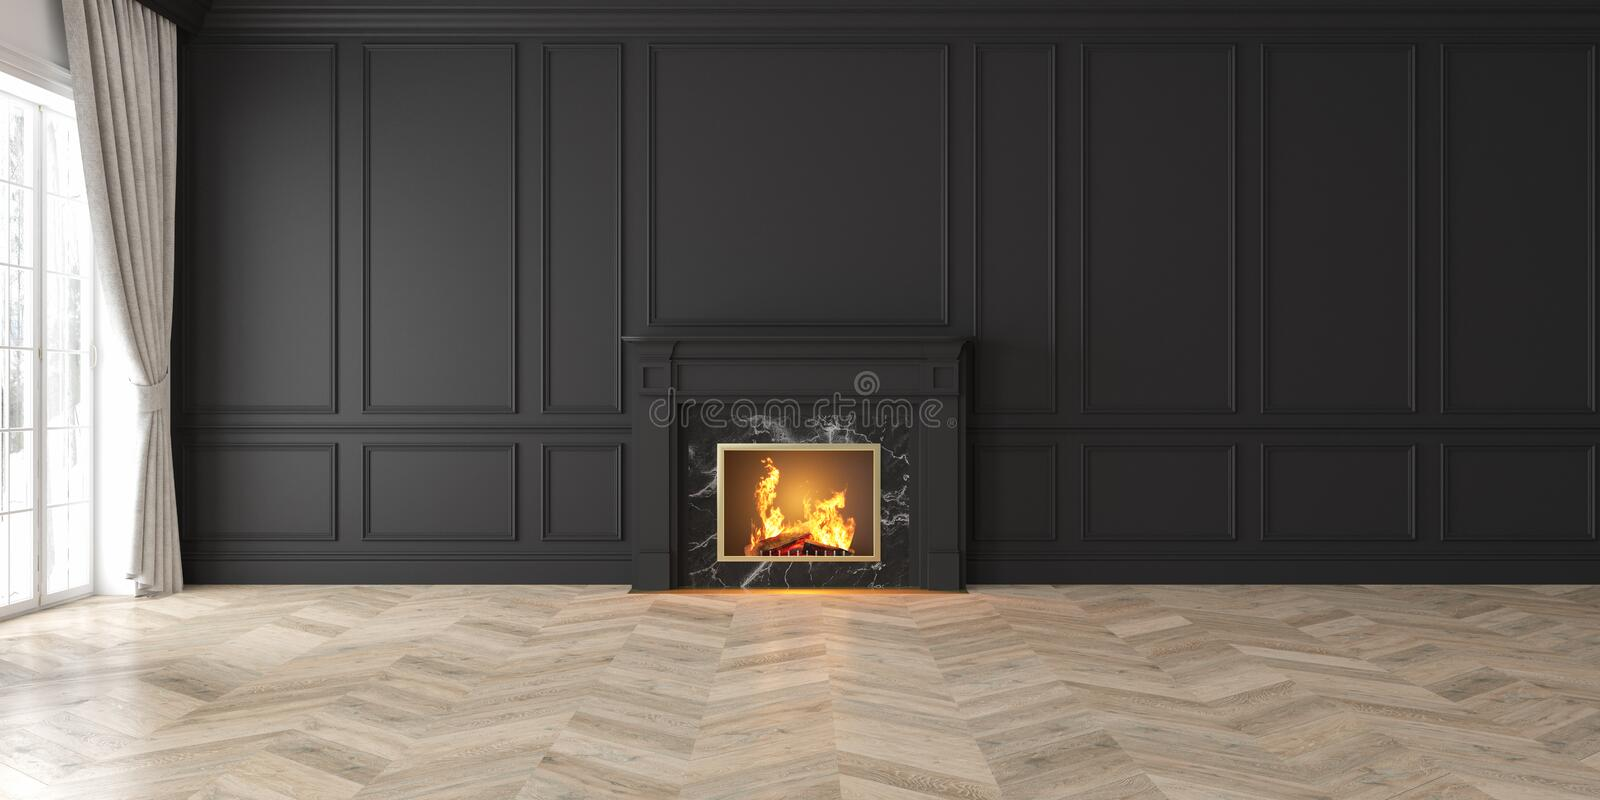 Classic empty black interior with fireplace, curtain, window, wall panels vector illustration